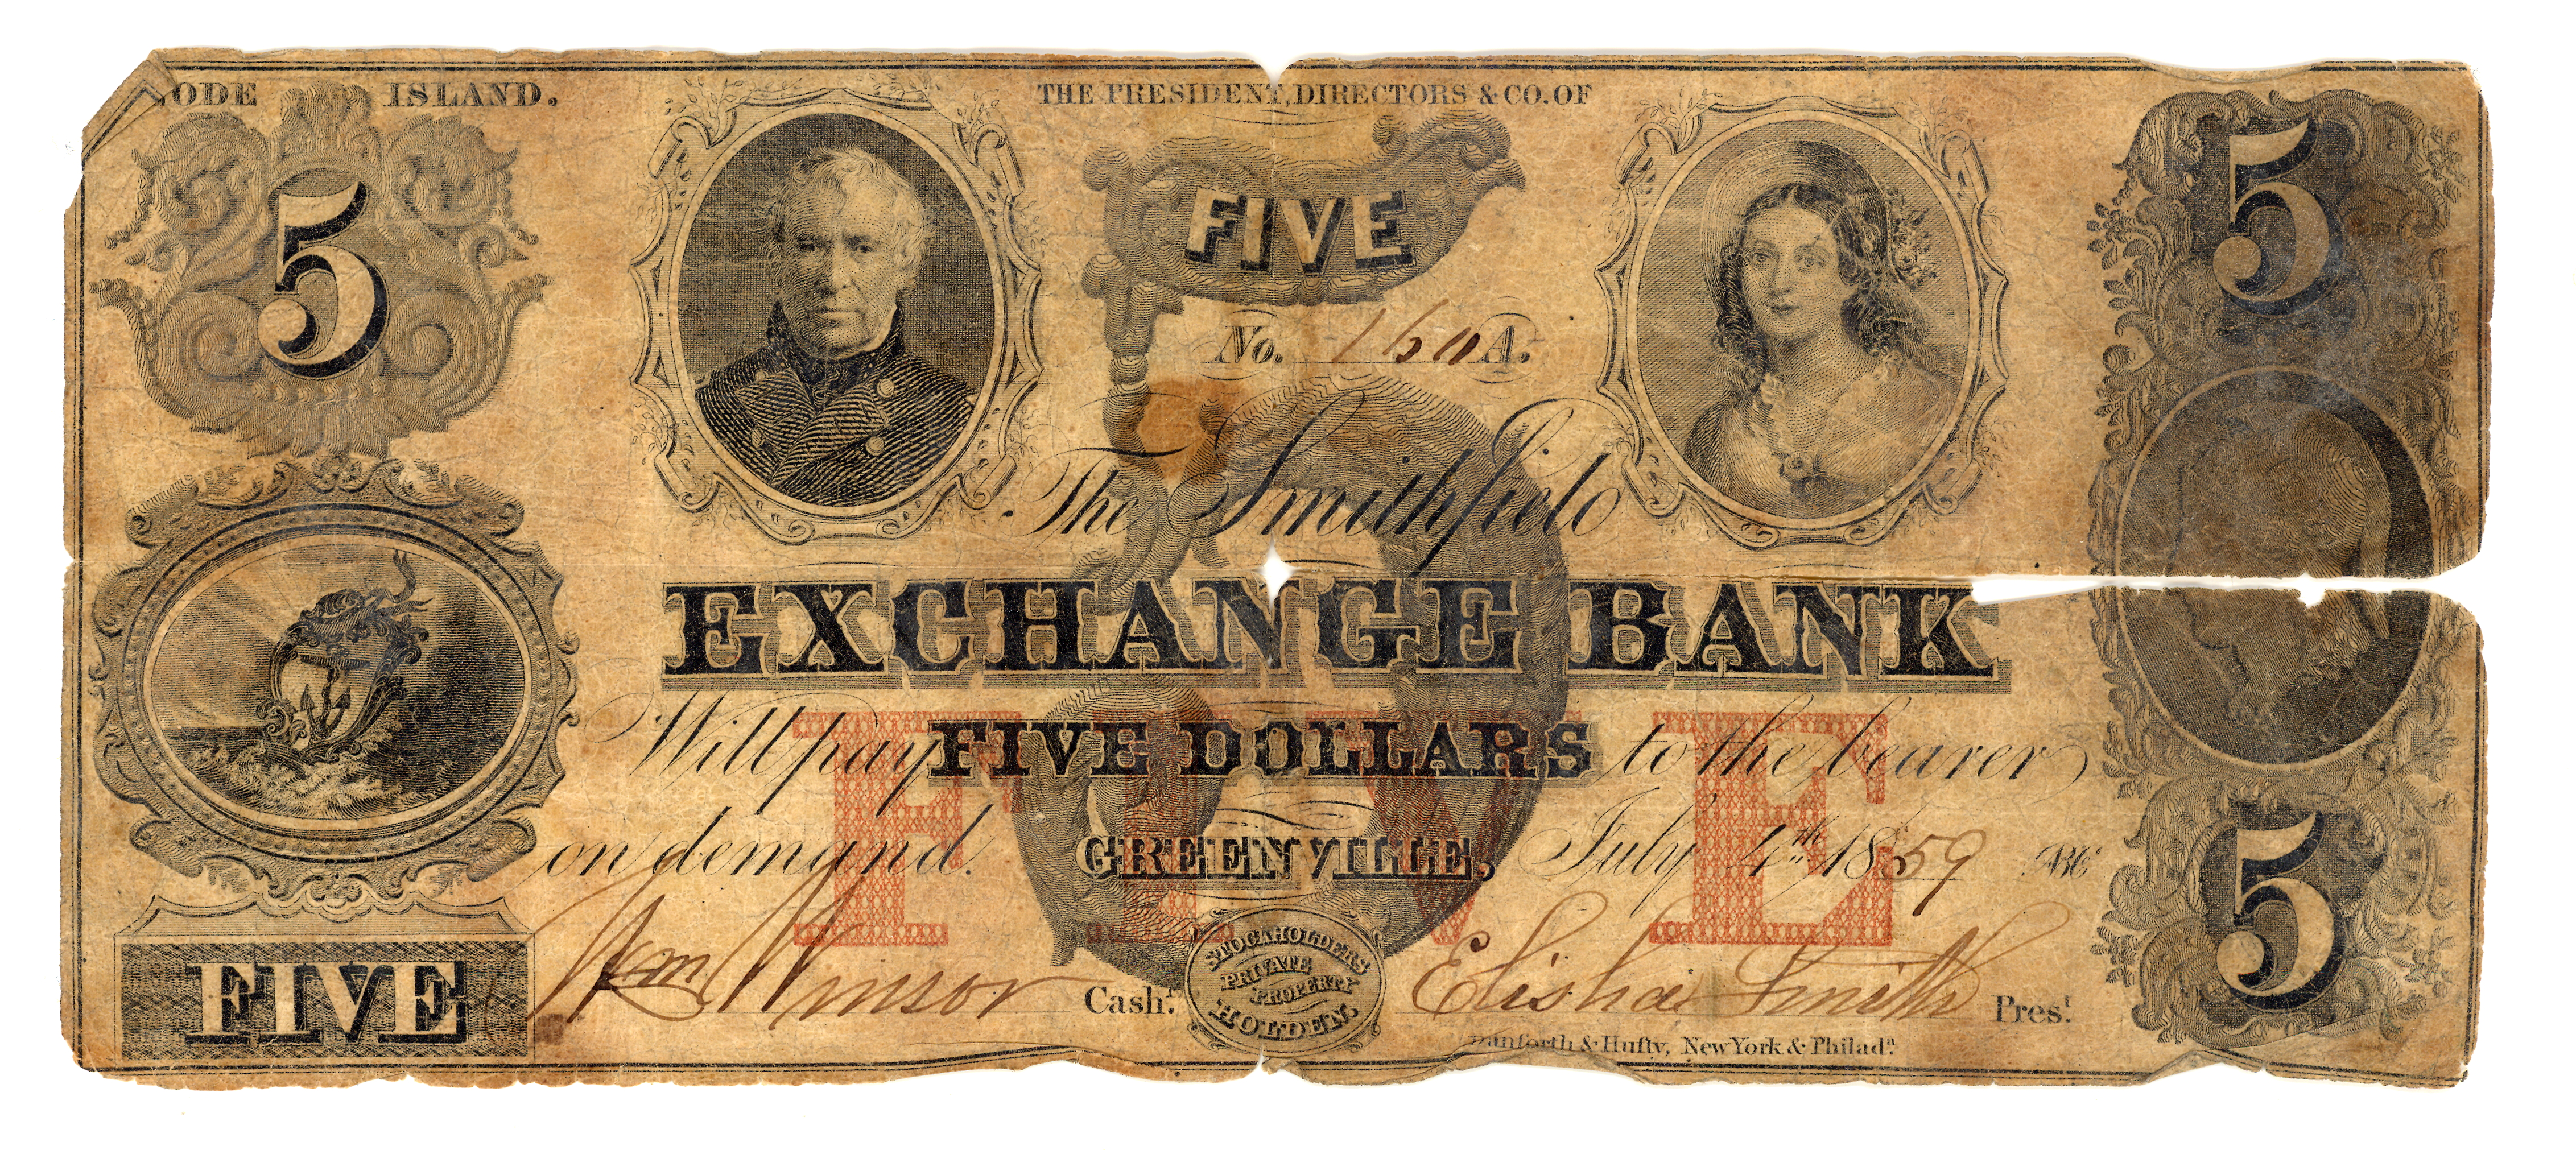 Exchange Bank Greenville R. I. Note